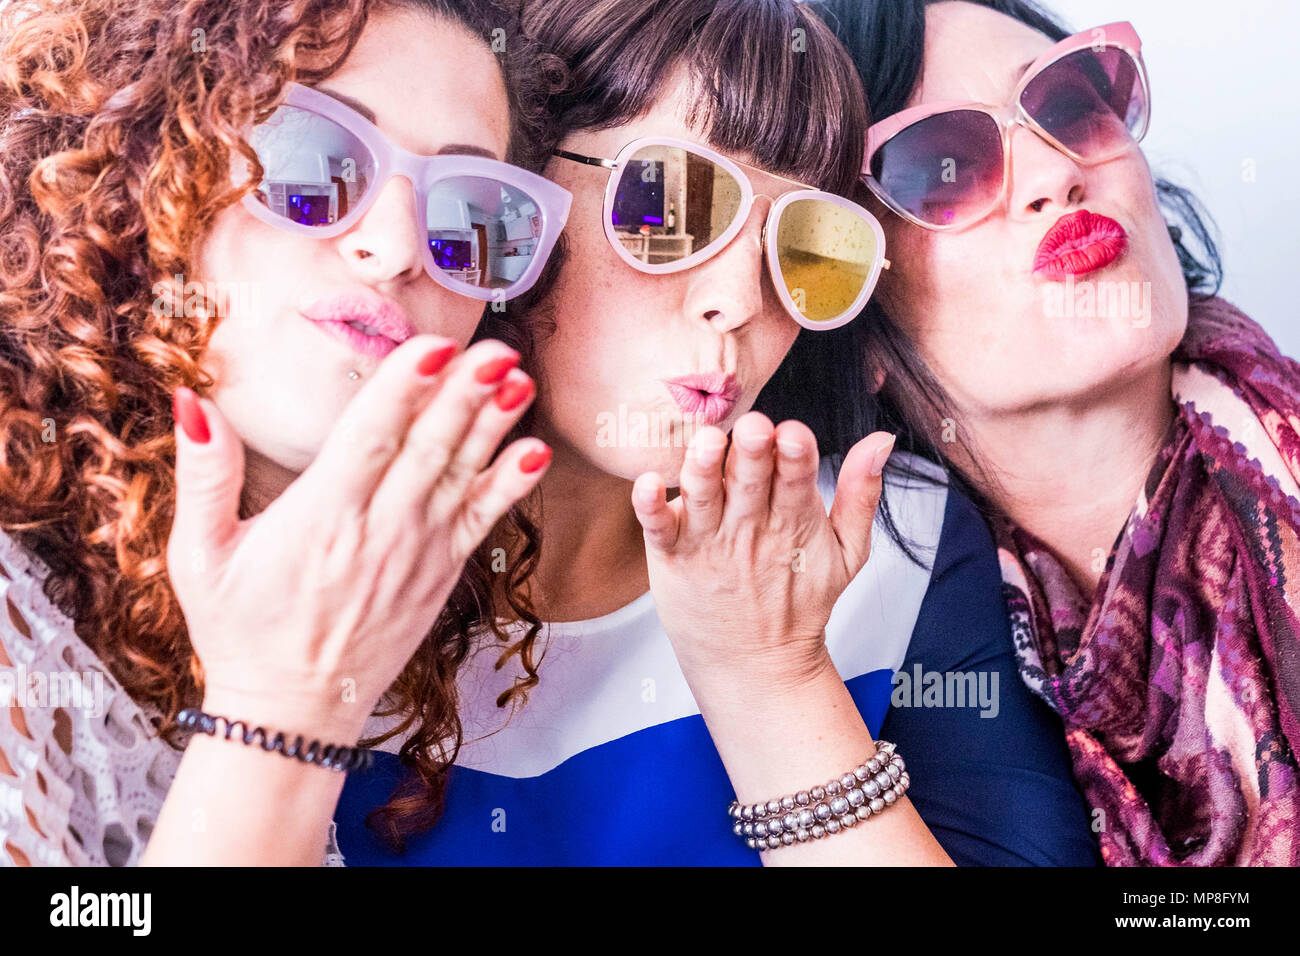 three caucasian young funny crazy woman do a party with colorful sunglasses. sending kiss and having fun together in a real friendship. group people a - Stock Image